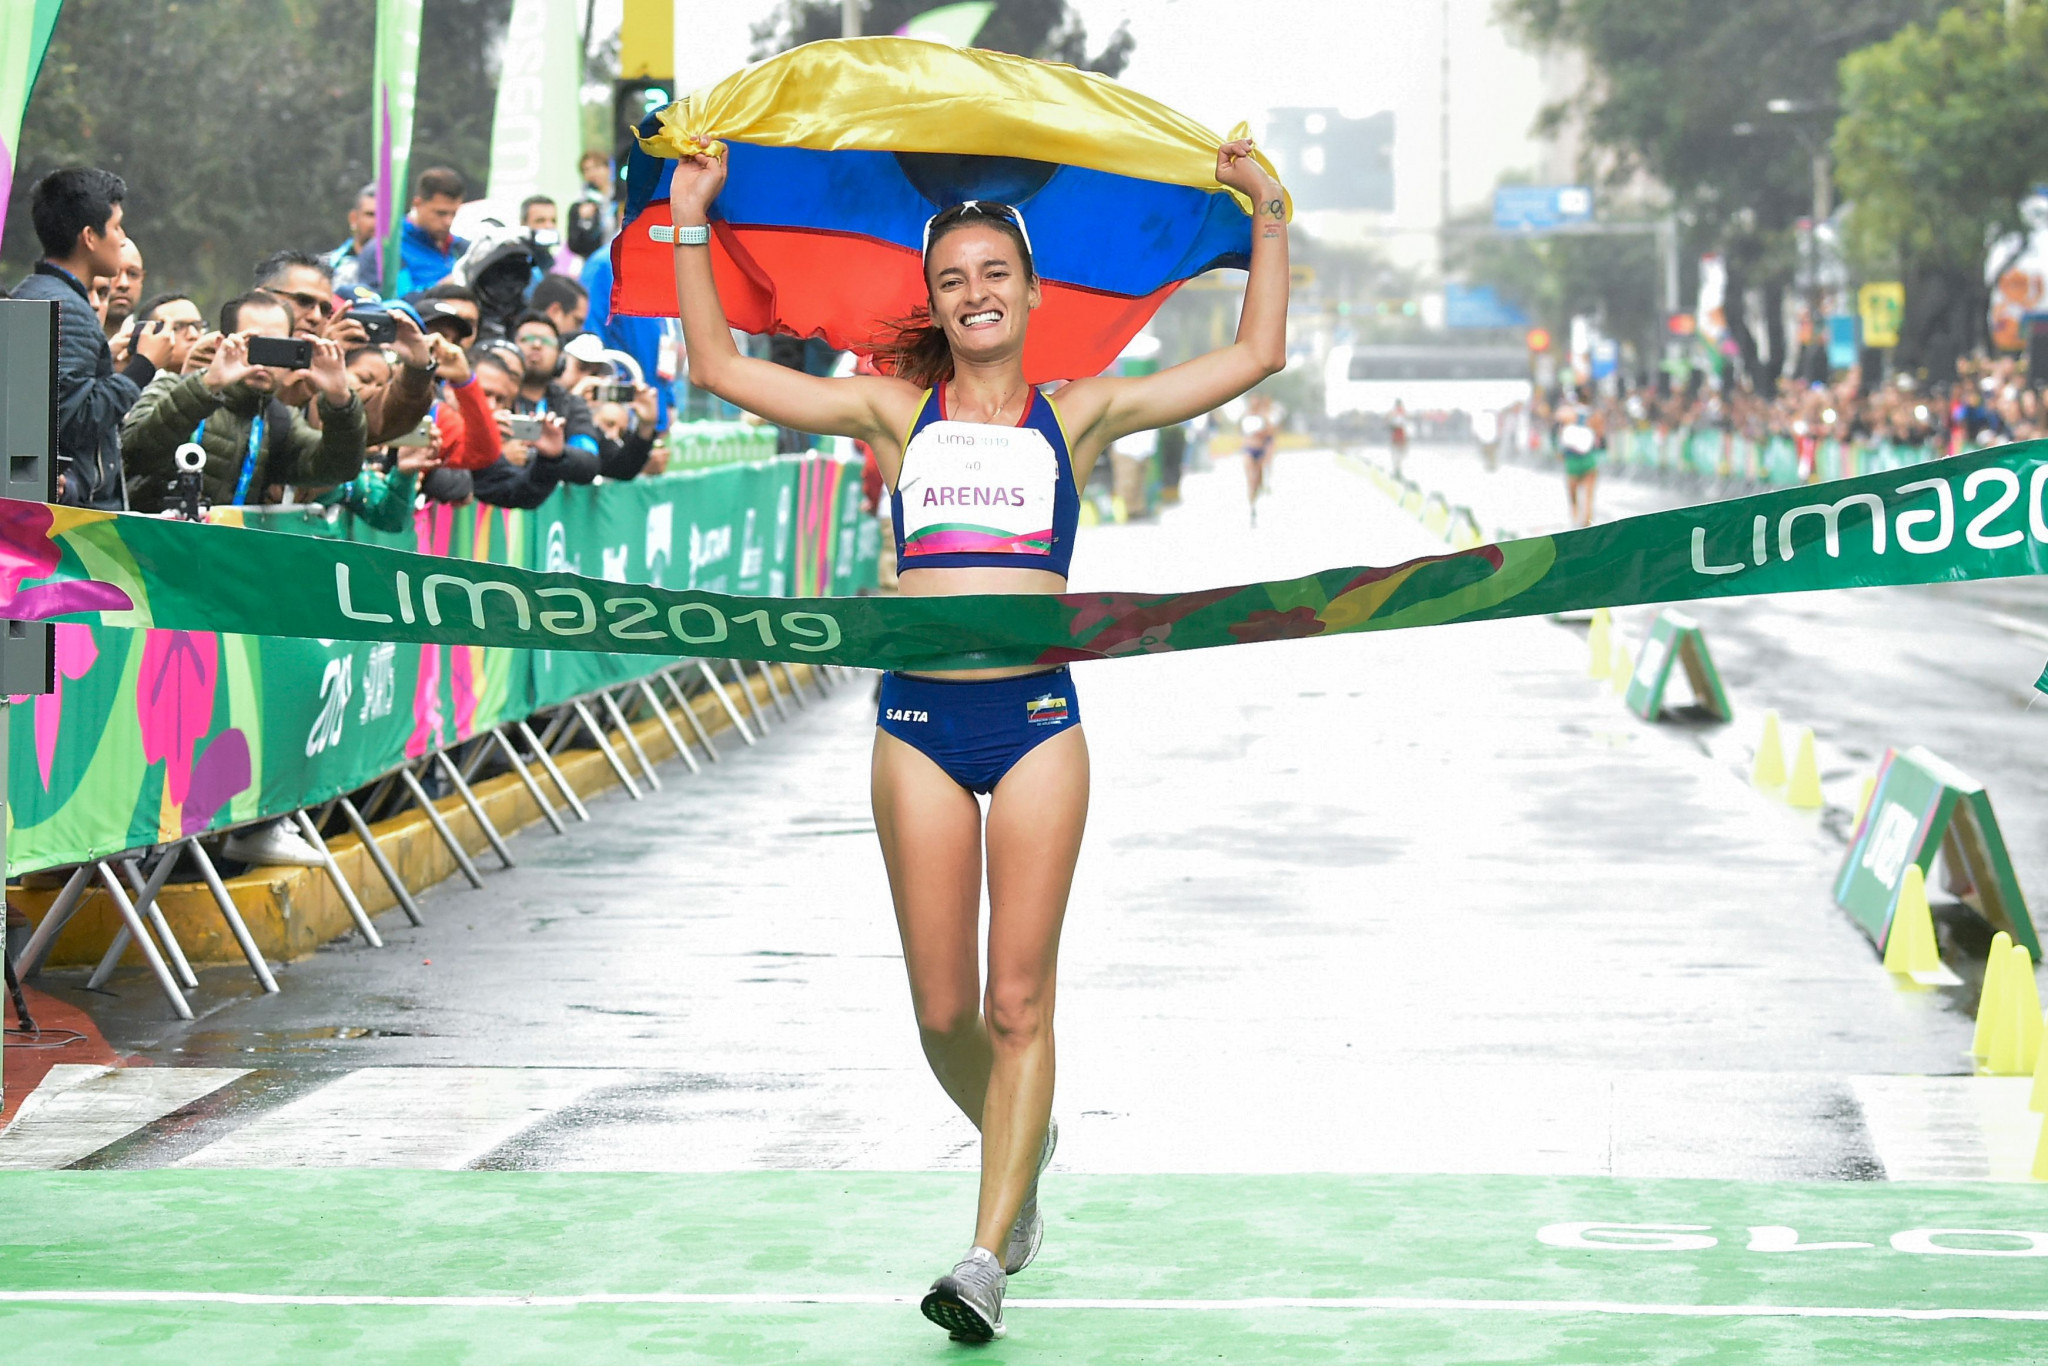 Colombia's Sandra Arenas won the women's 20km race walk ©Getty Images